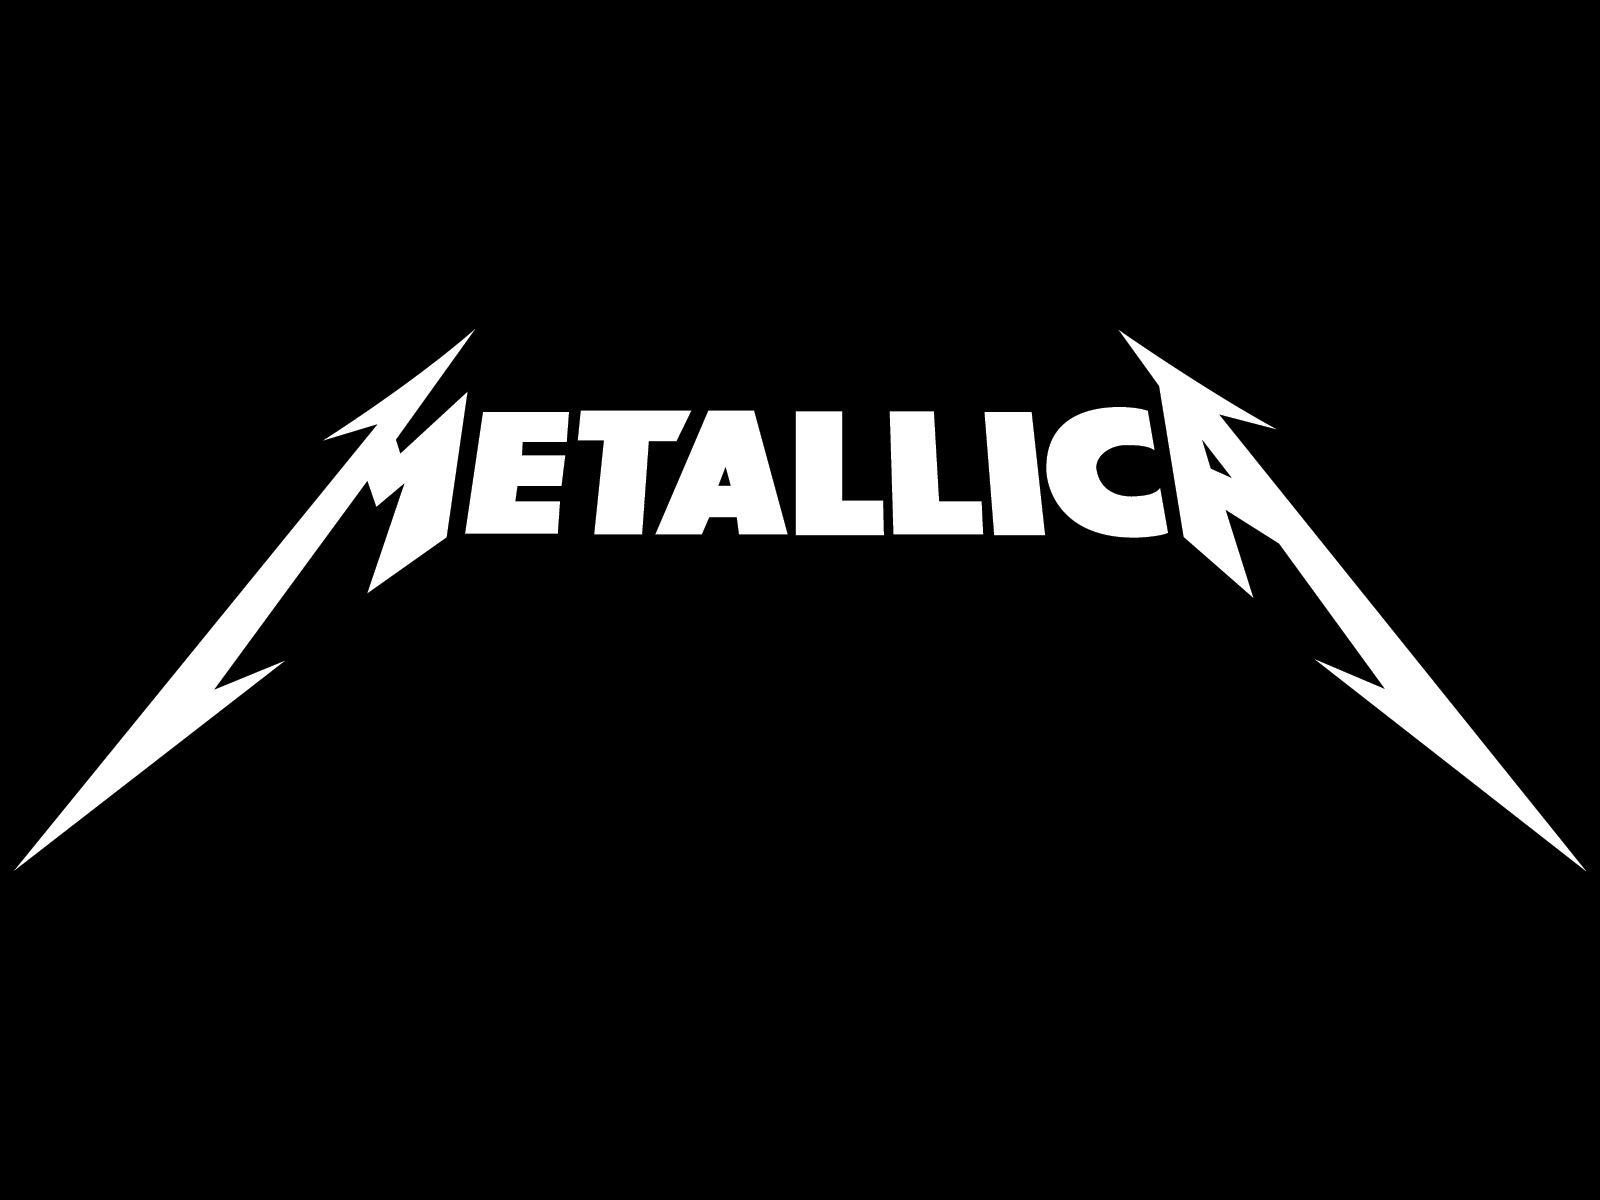 Metallica Logo - An example of using sans serif typeface accentuated with selective serifs on the letters at either end of the word. I also like how they adjusted the thickness of the strokes on the end words to give a sense of size and form to the text.